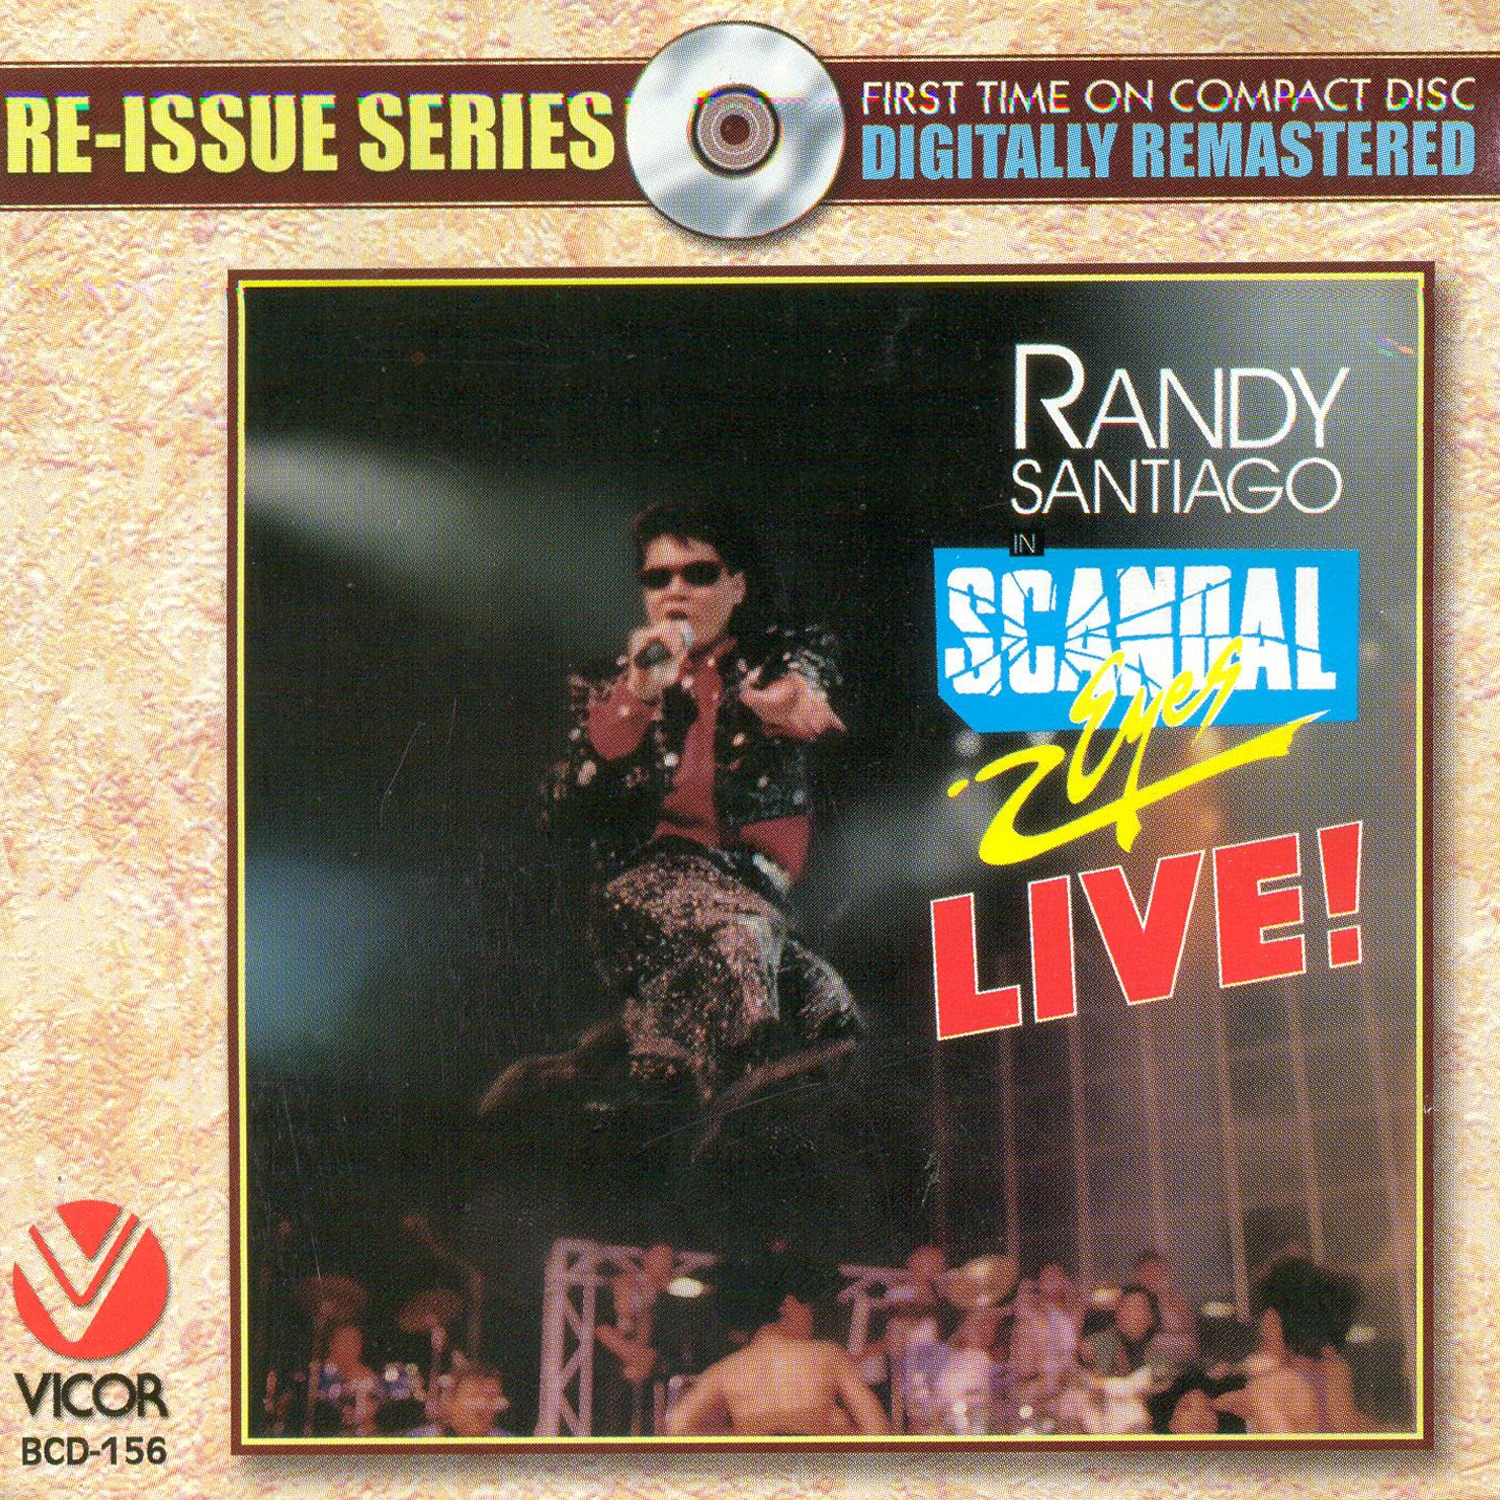 Re-issue series: scandal eyes live